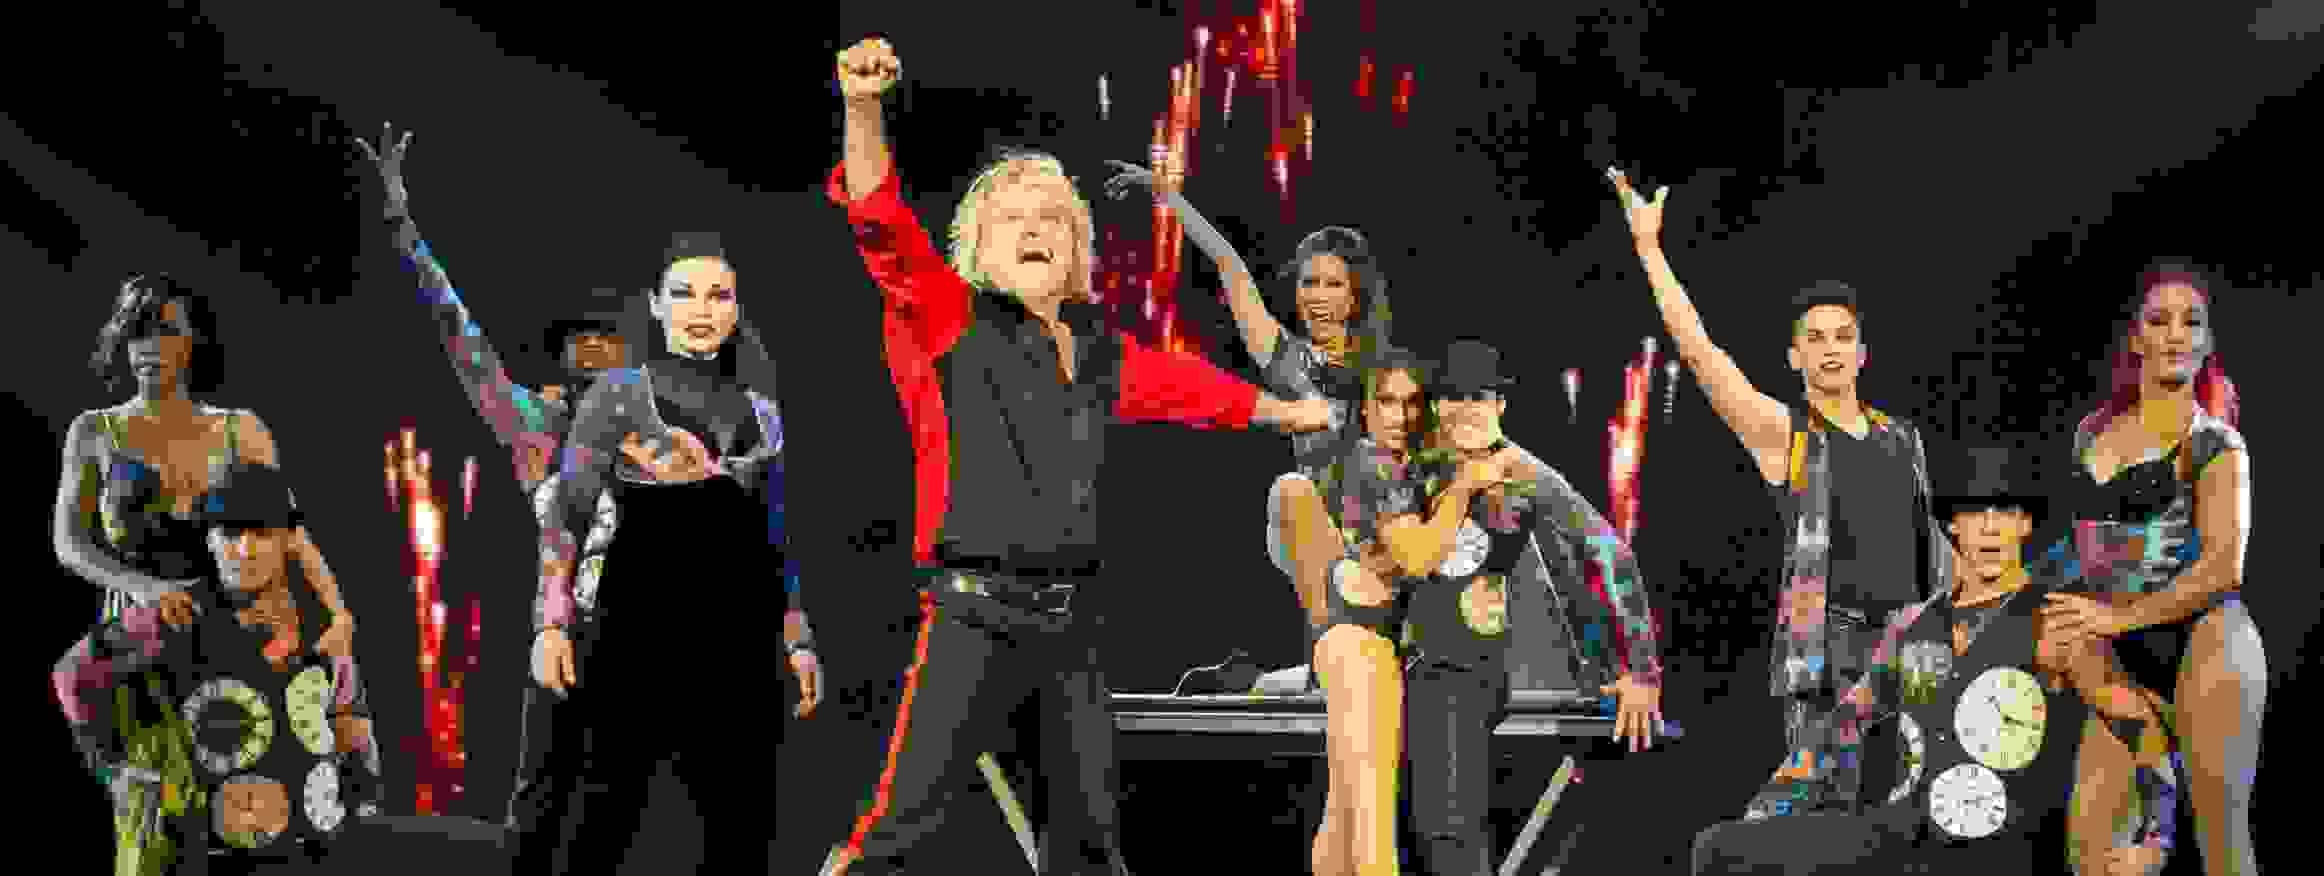 O 02 Hans Klok House Of Mystery Finale Foto Andy Doornhein